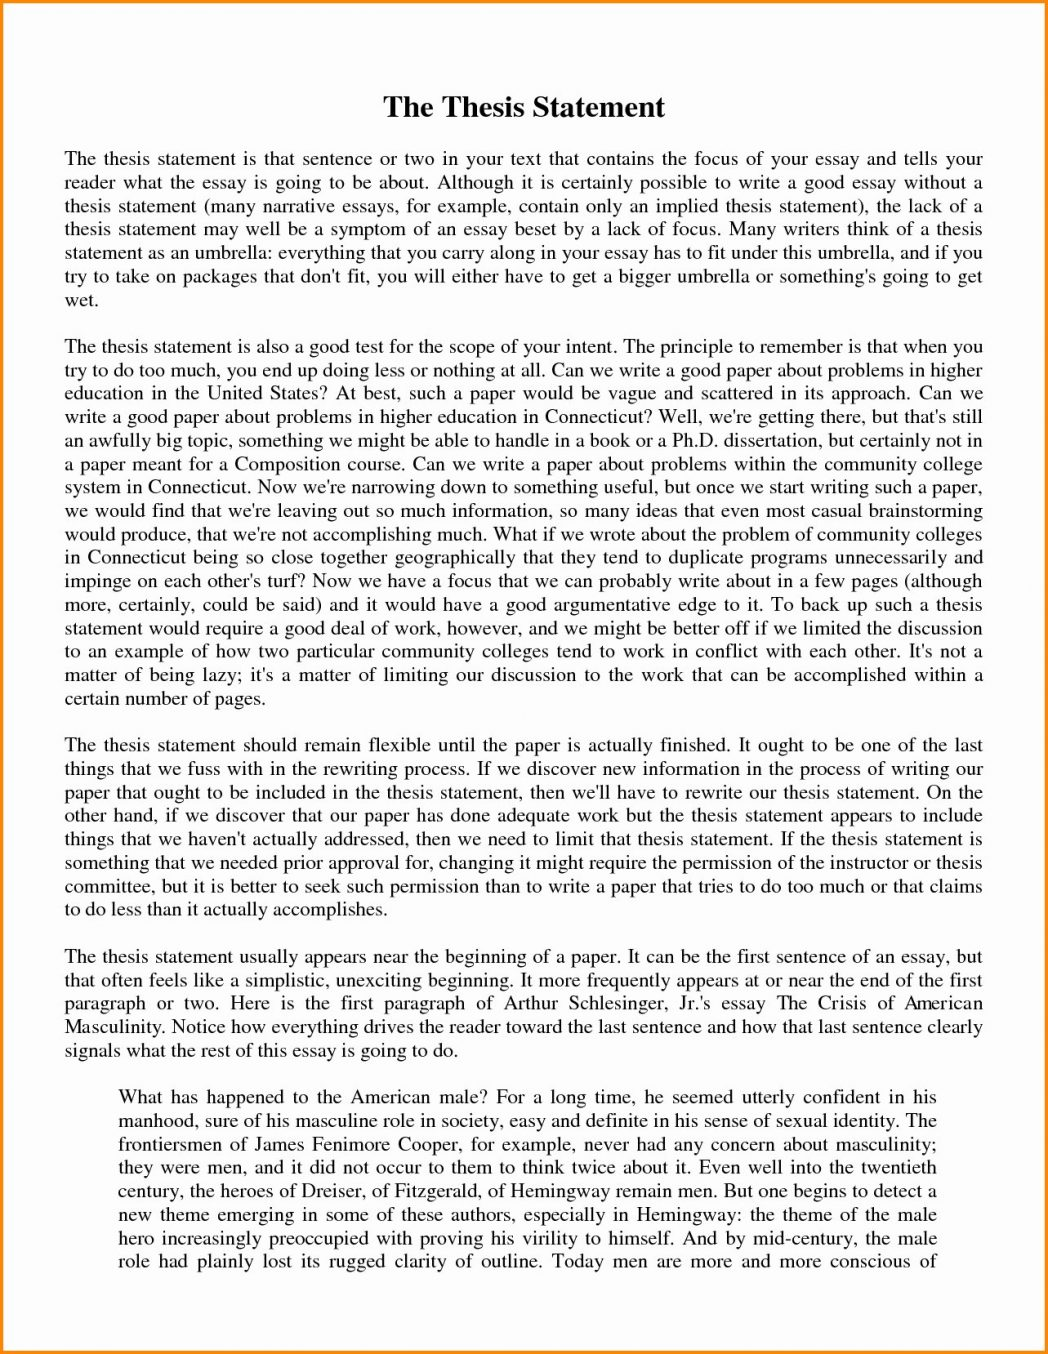 008 Thesis In Essay Example Beautiful Simple Topics For Writing Creative An Statement Unique Ks3 Of Word Argumentative Tips Analytical Examples Expository Sensational Beauty Definition Based Paper Full